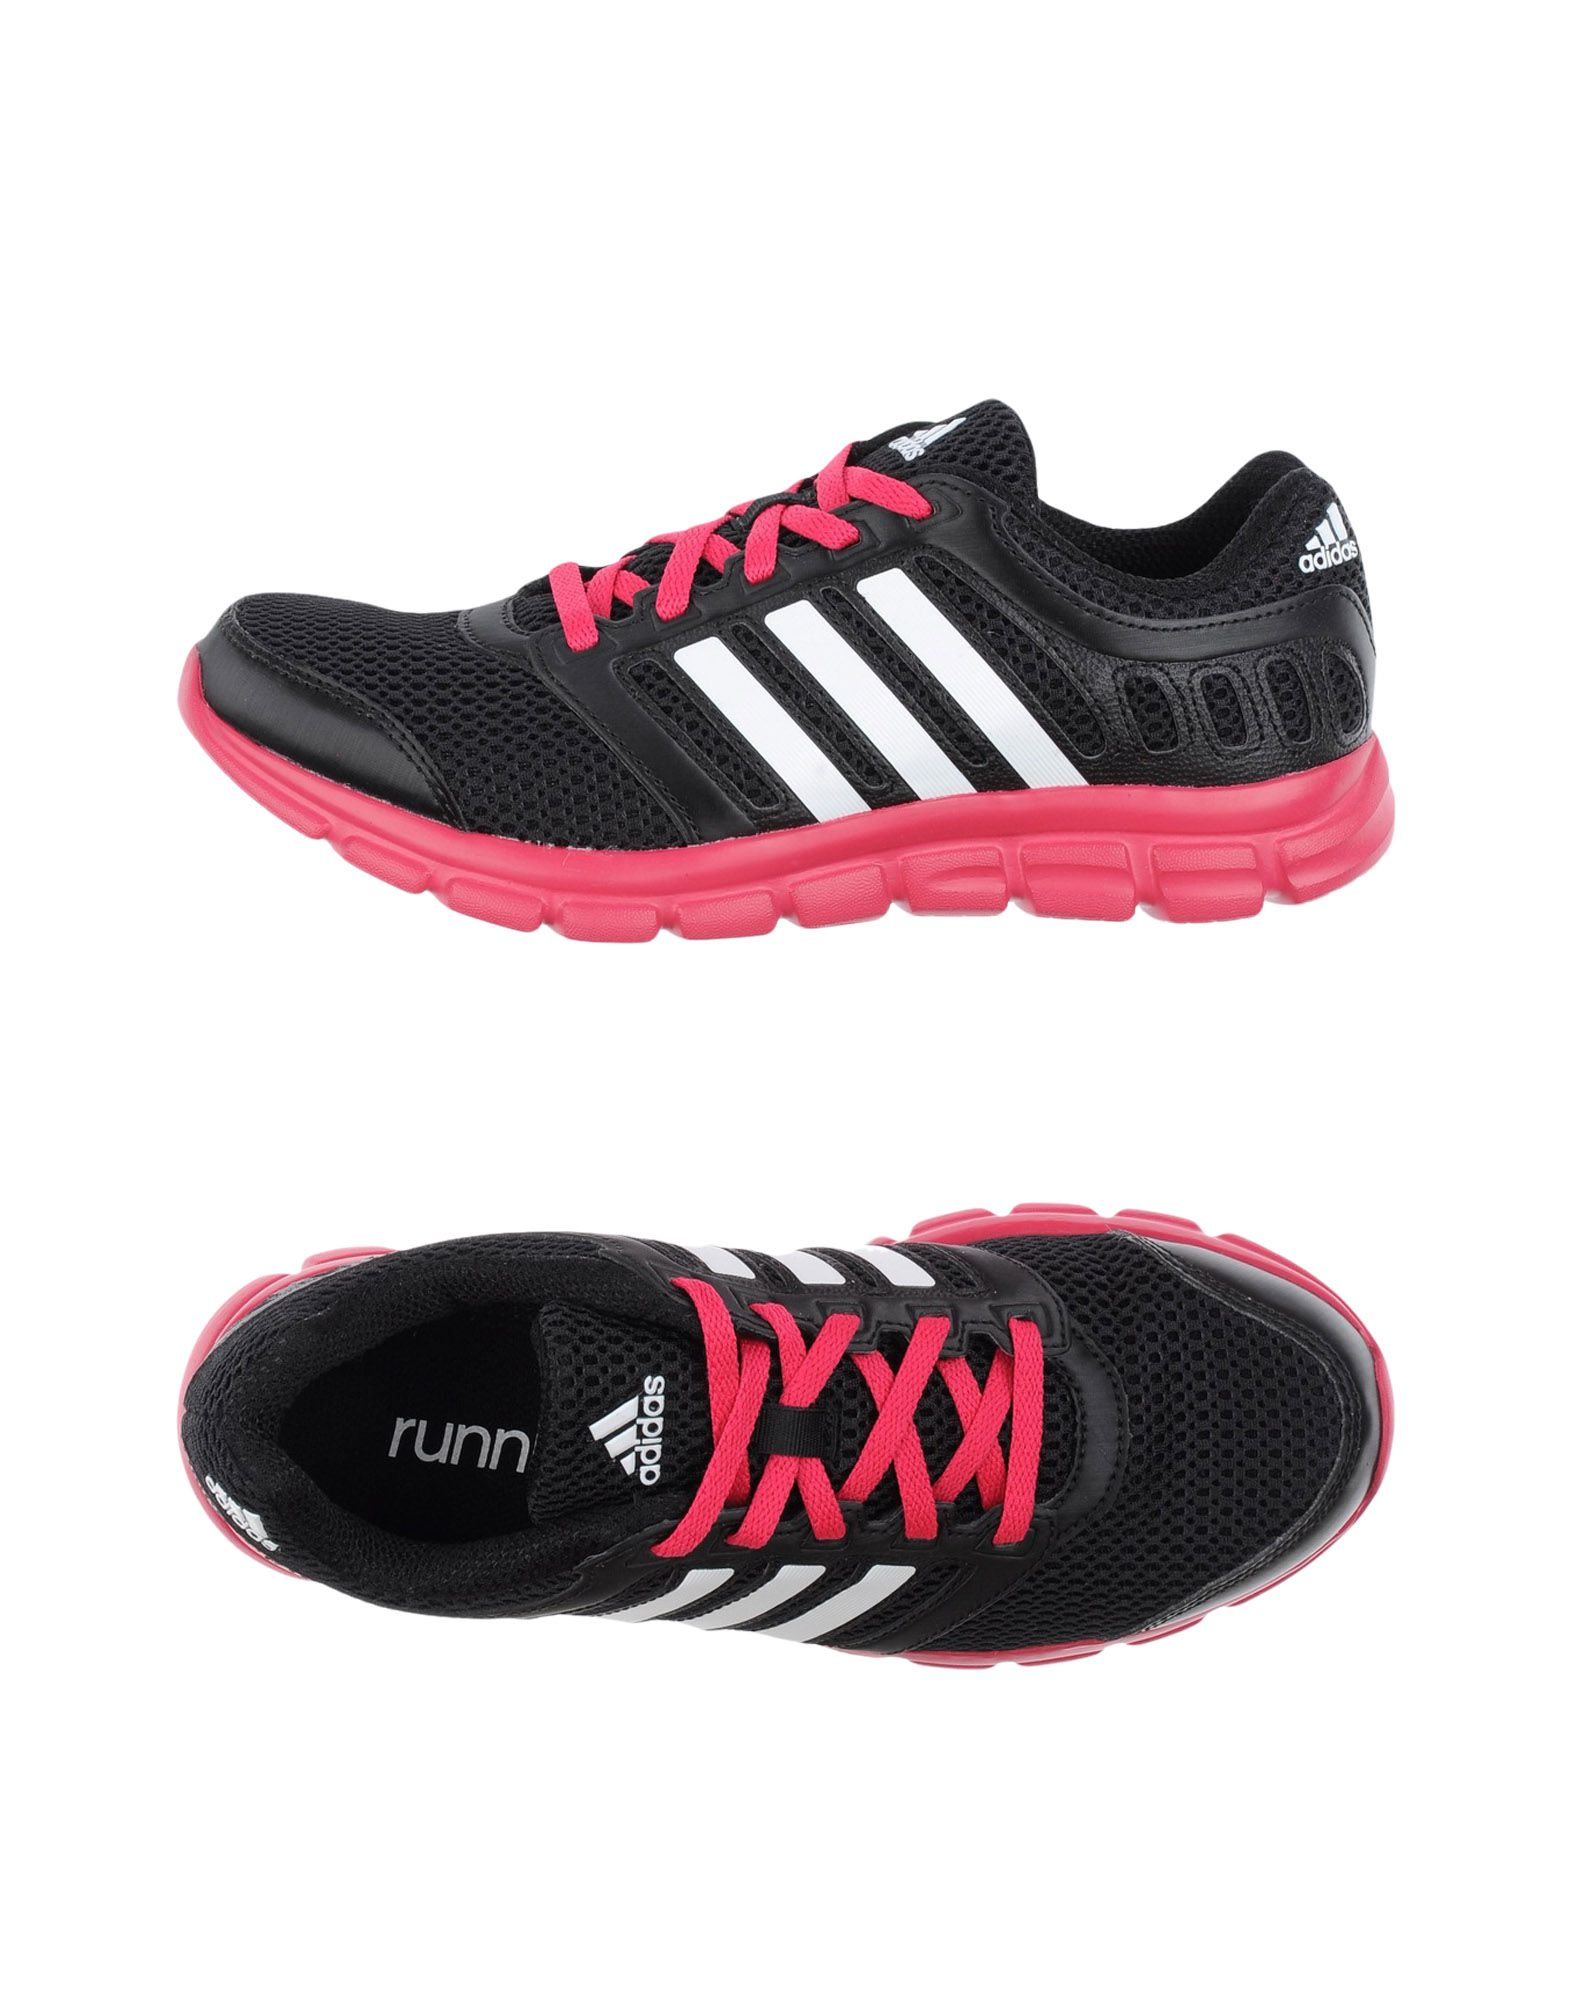 Baskets Adidas Femme - Baskets Adidas Noir Chaussures casual sauvages